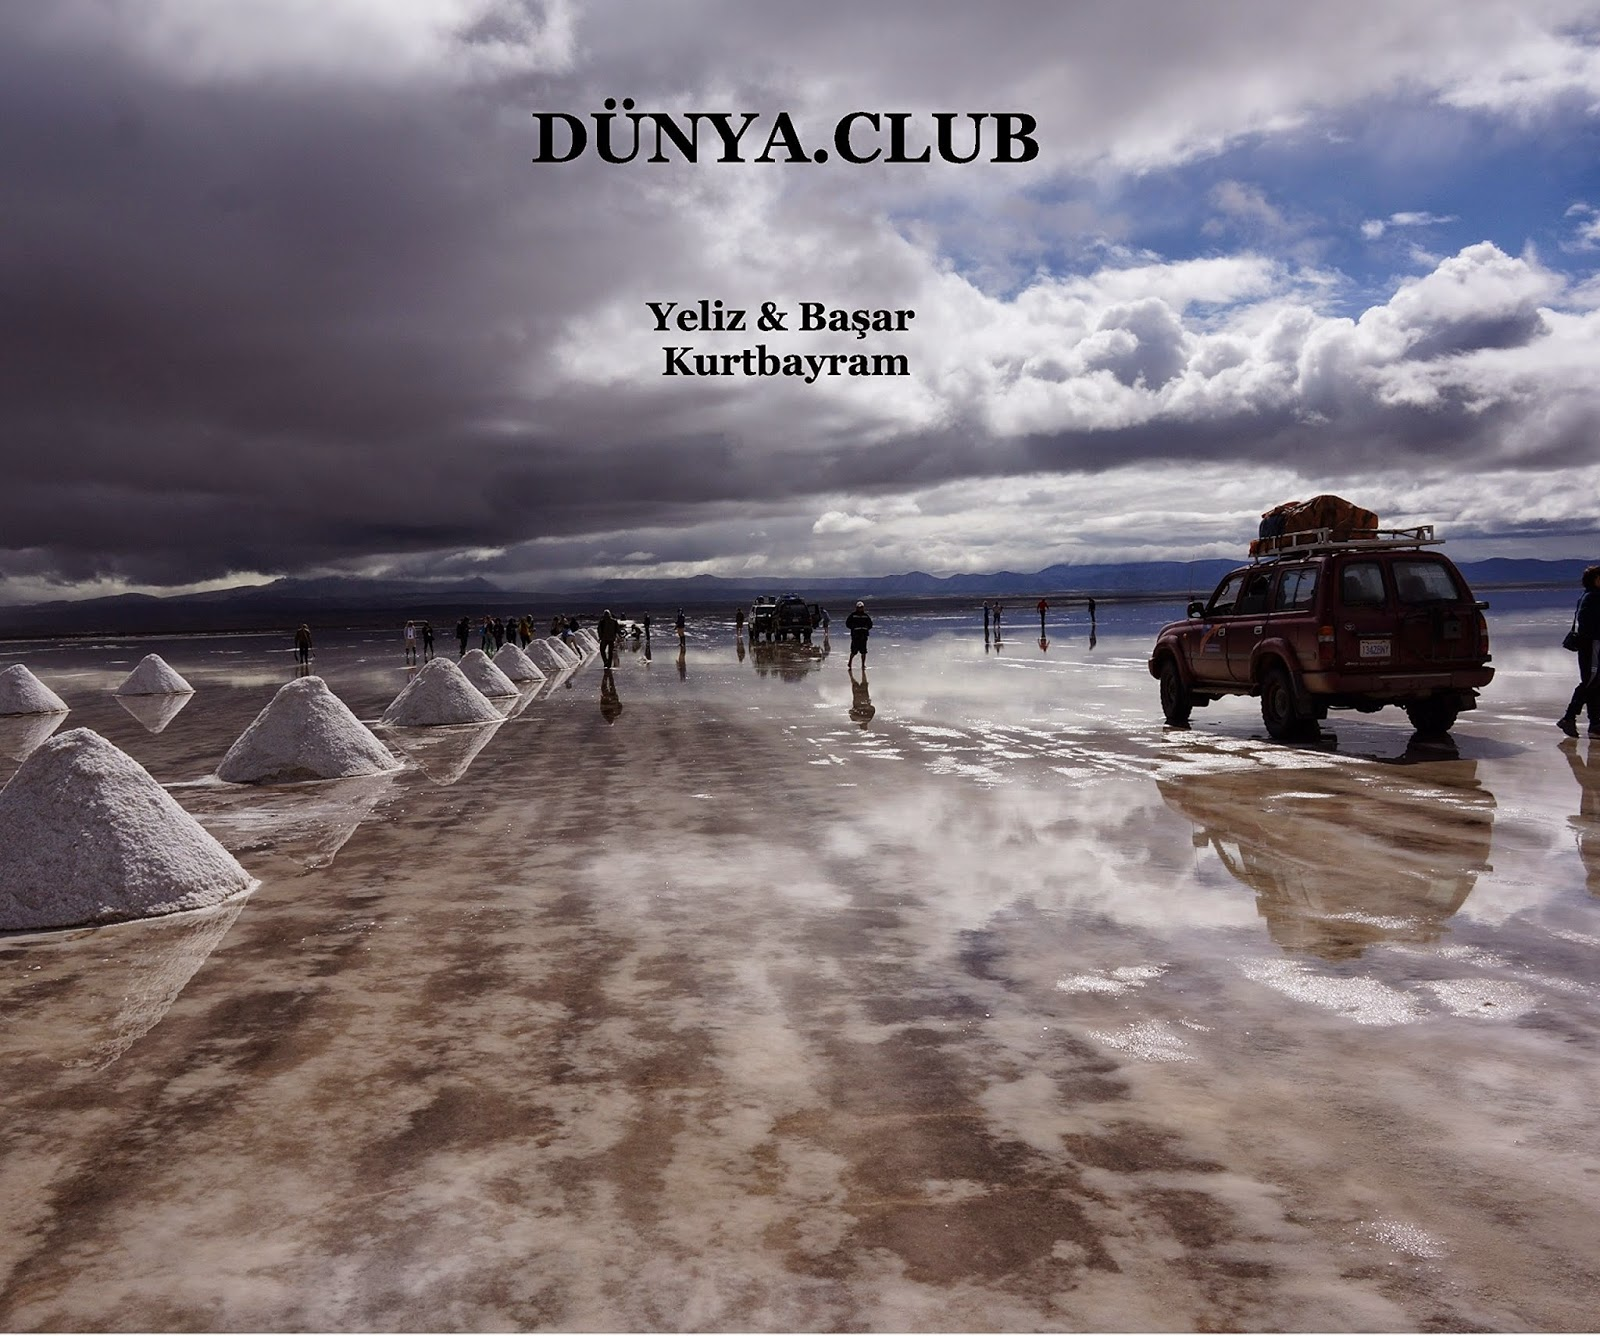 http://www.amazon.com/DÜNYA-CLUB-Basar-Kurtbayram/dp/1320177948